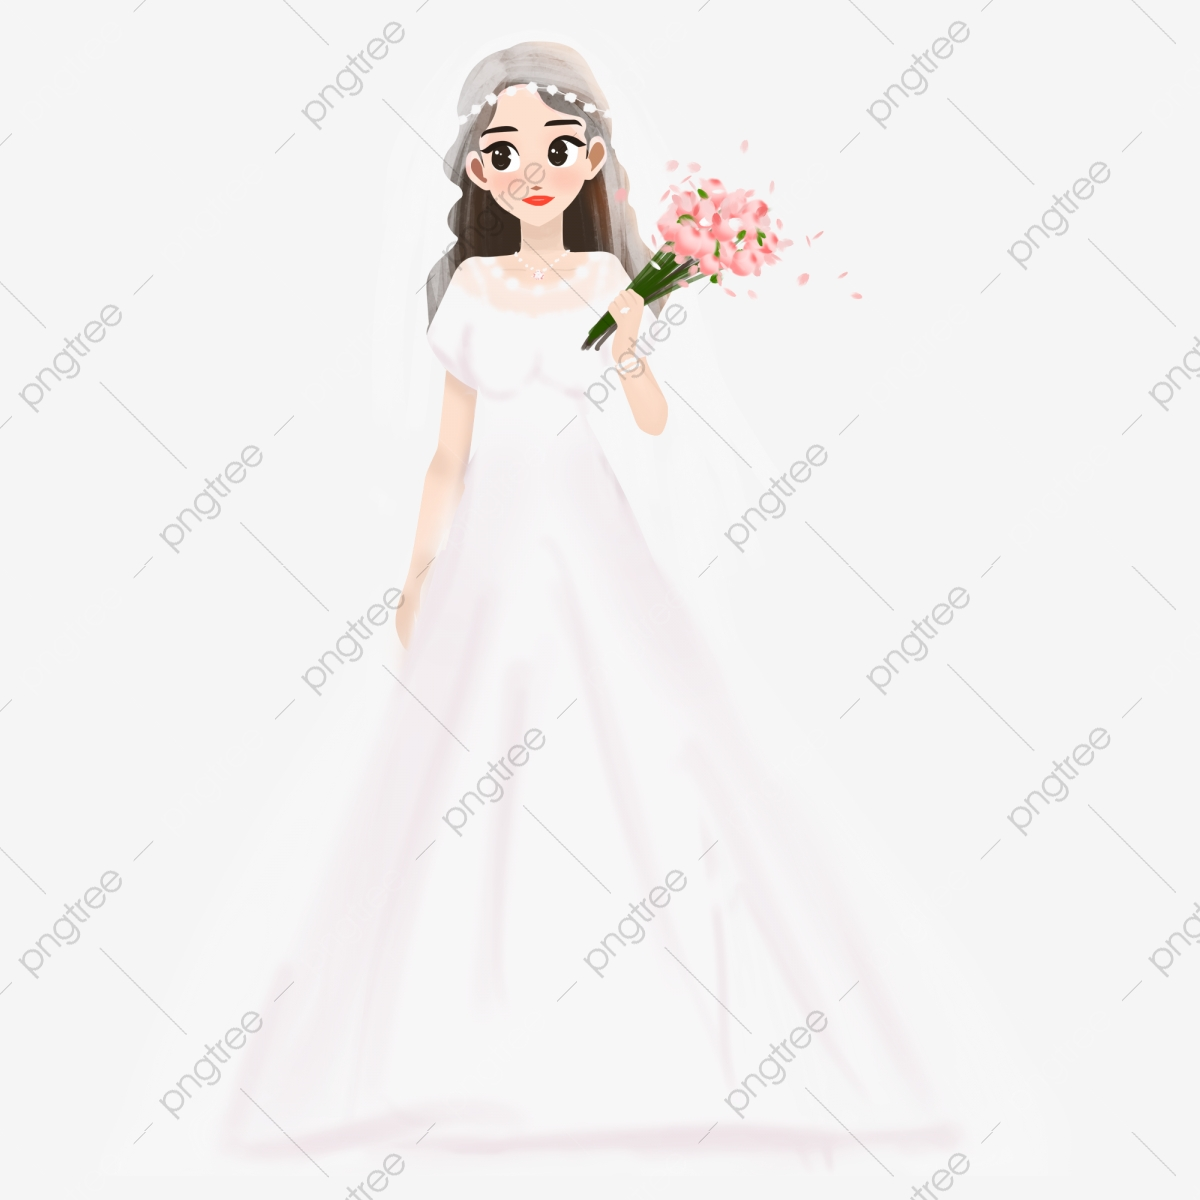 Fresh And Cute Big Eyed Bride With Mercial Elements